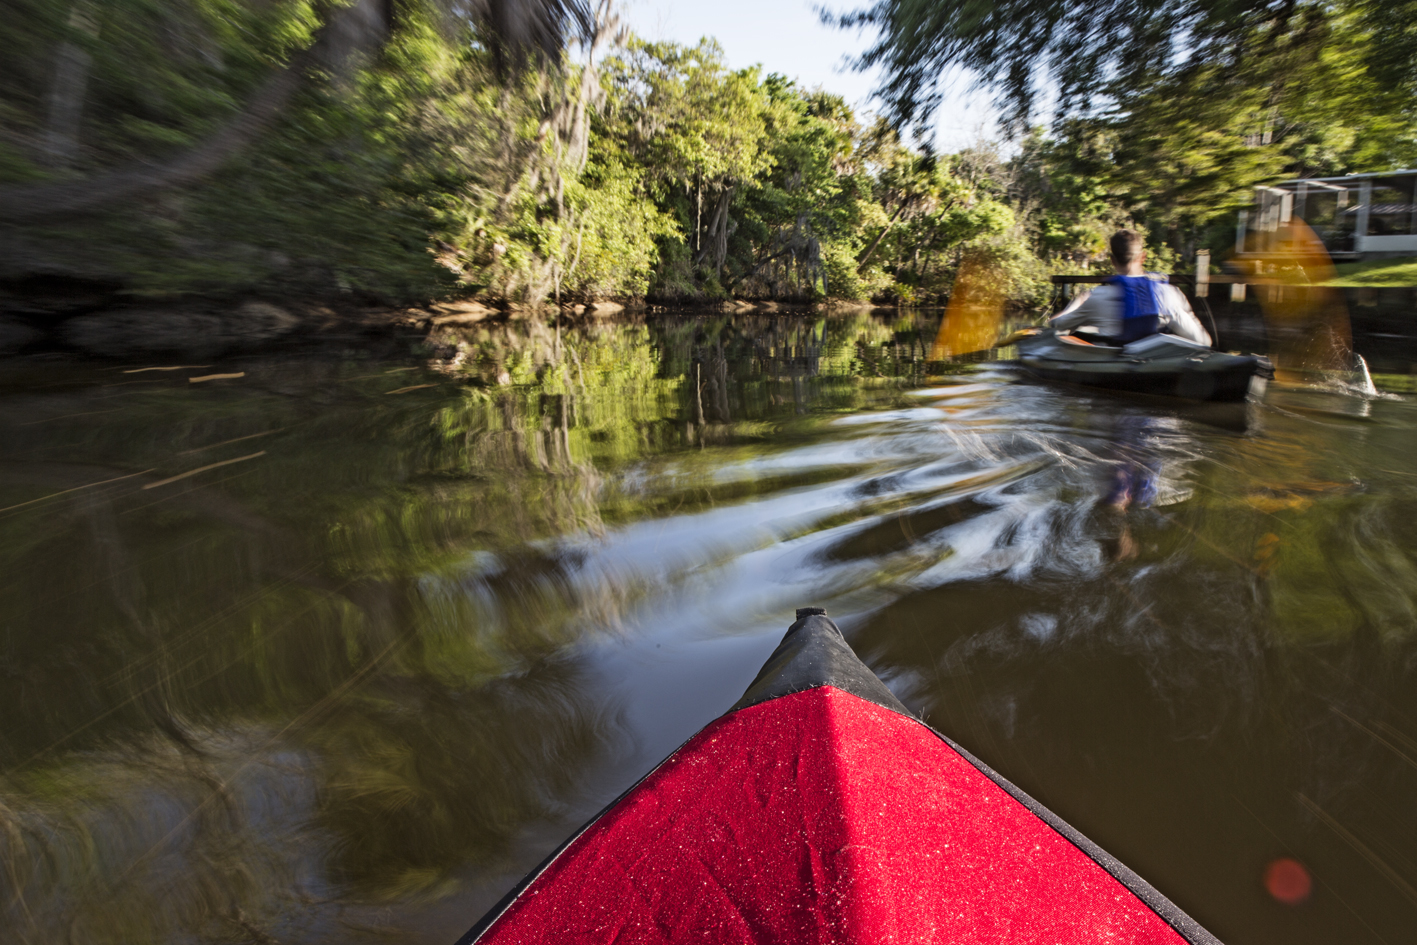 Some blurry action on Alligator Creek